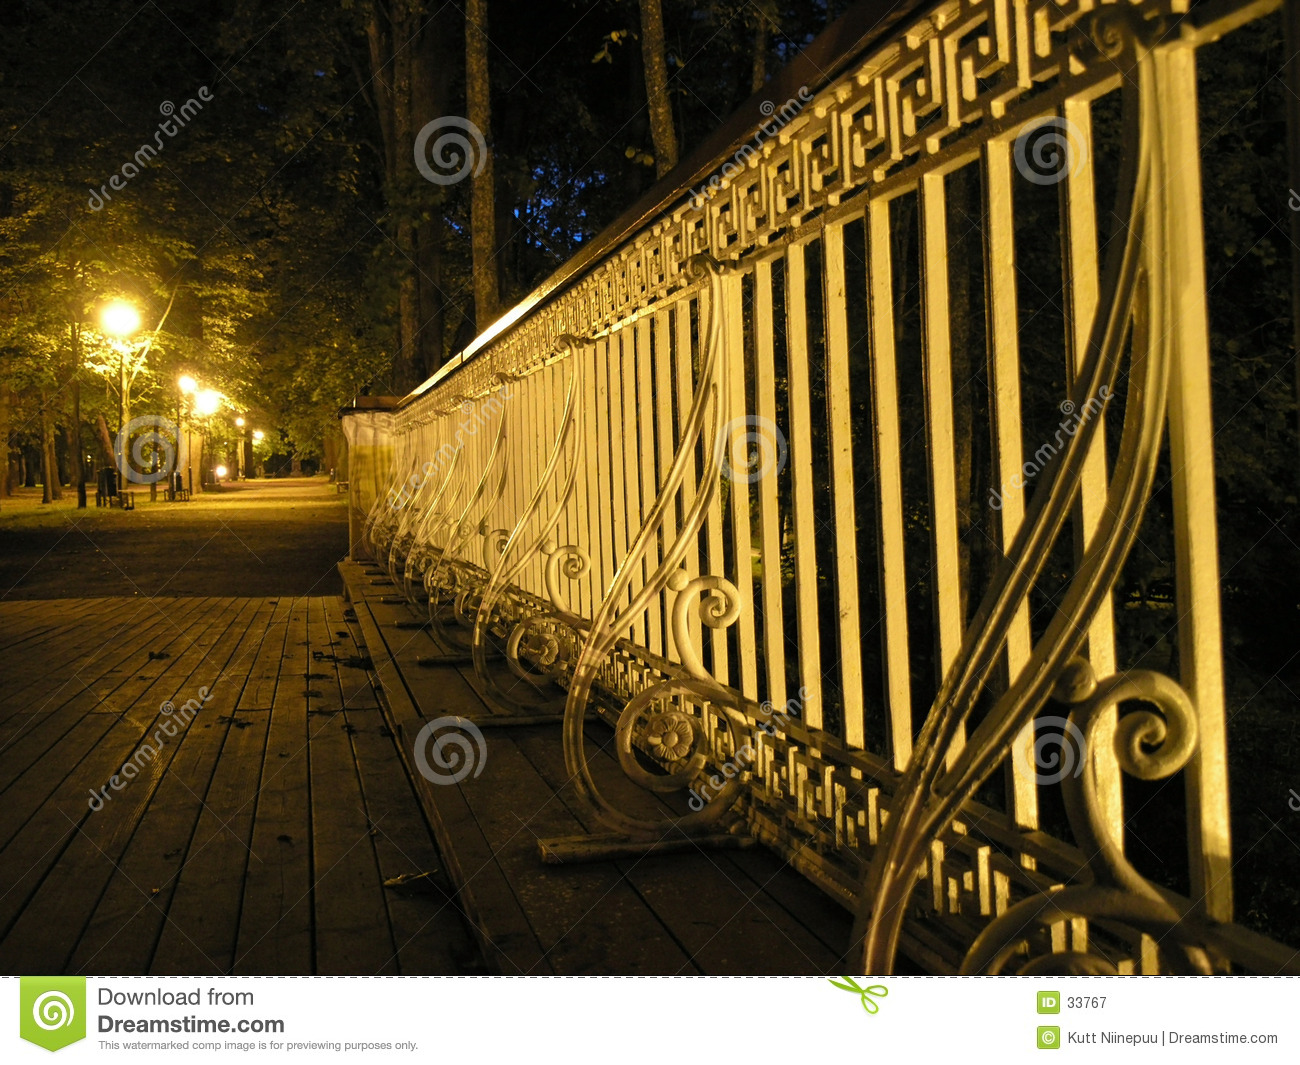 Bridge railing at night